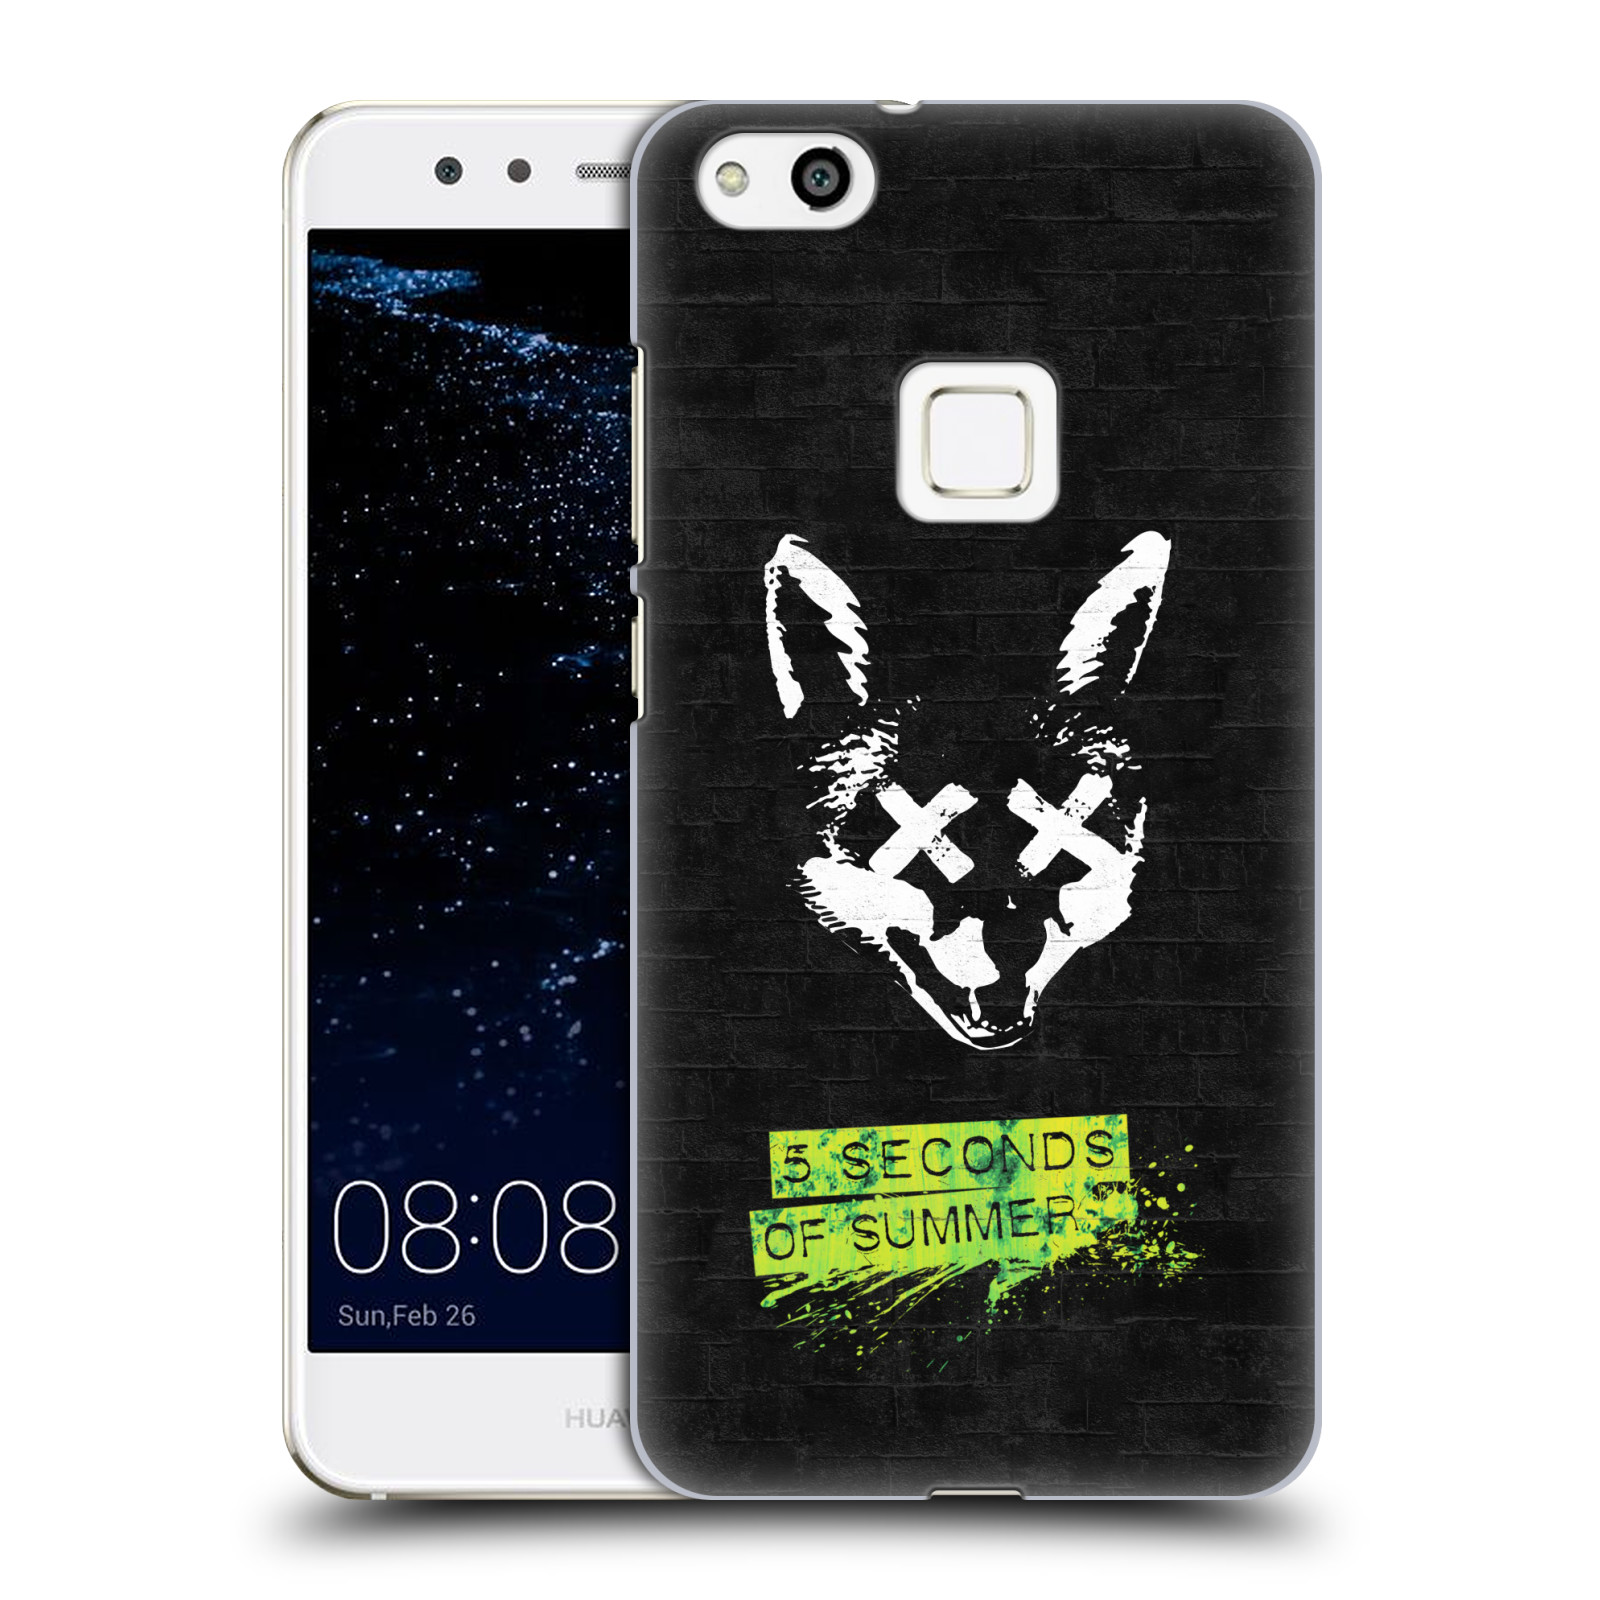 Plastové pouzdro na mobil Huawei P10 Lite Head Case - 5 Seconds of Summer - Fox